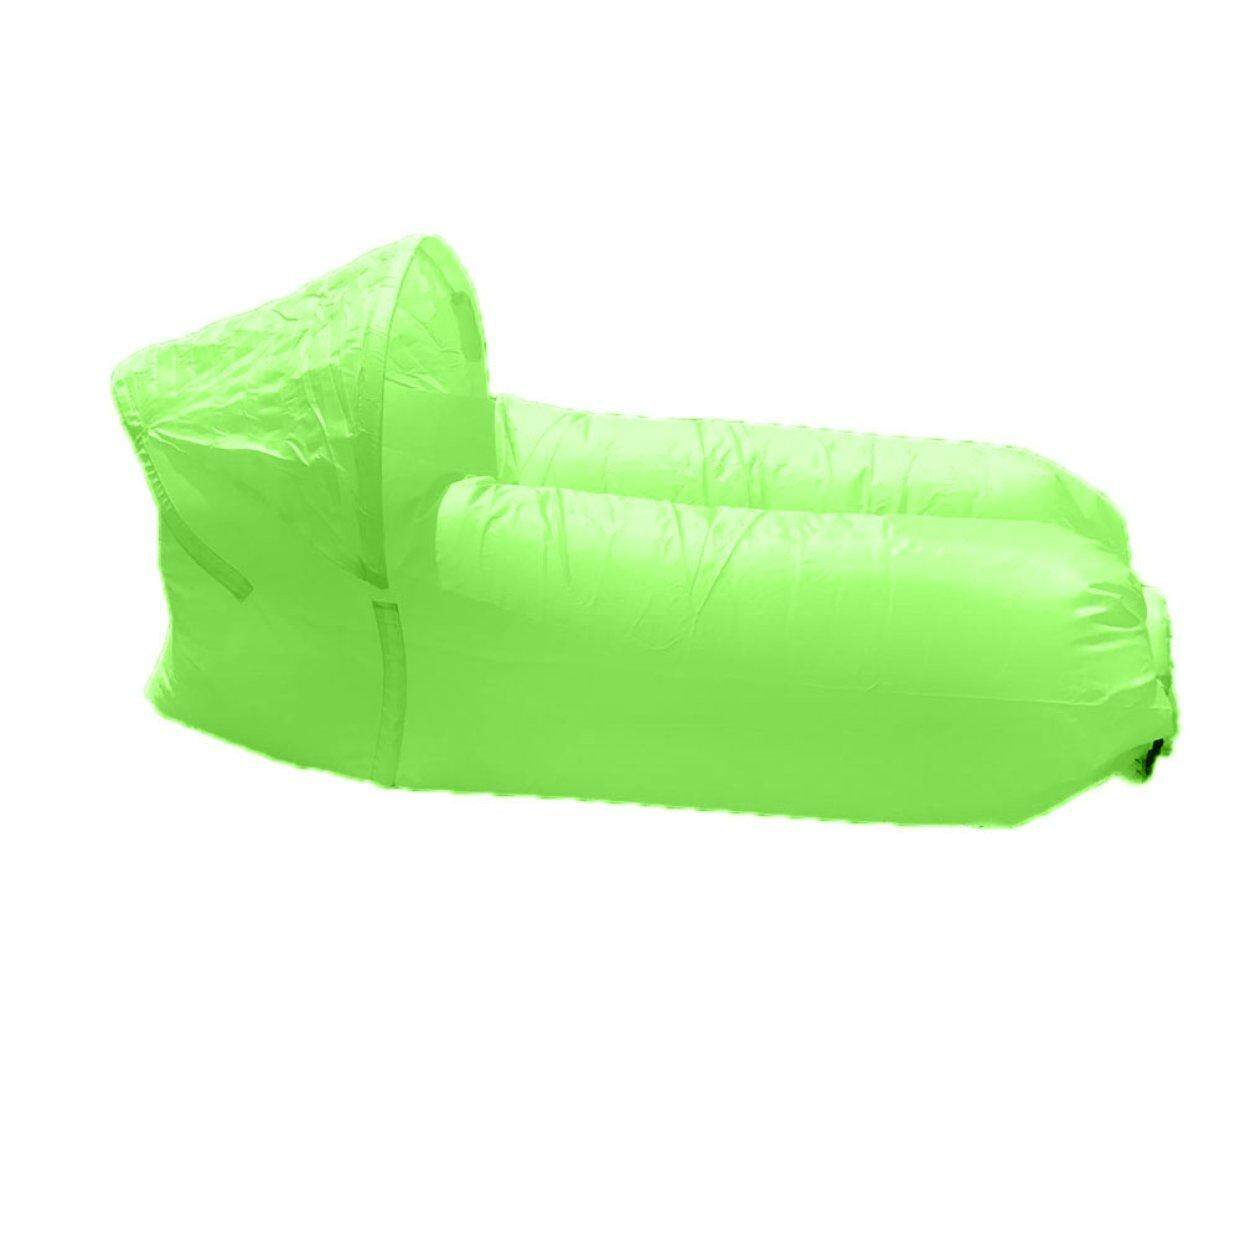 Hot Deals Portable Travel Lying Bed Lazy Air Cushion Inflatable sofa camping sleeping